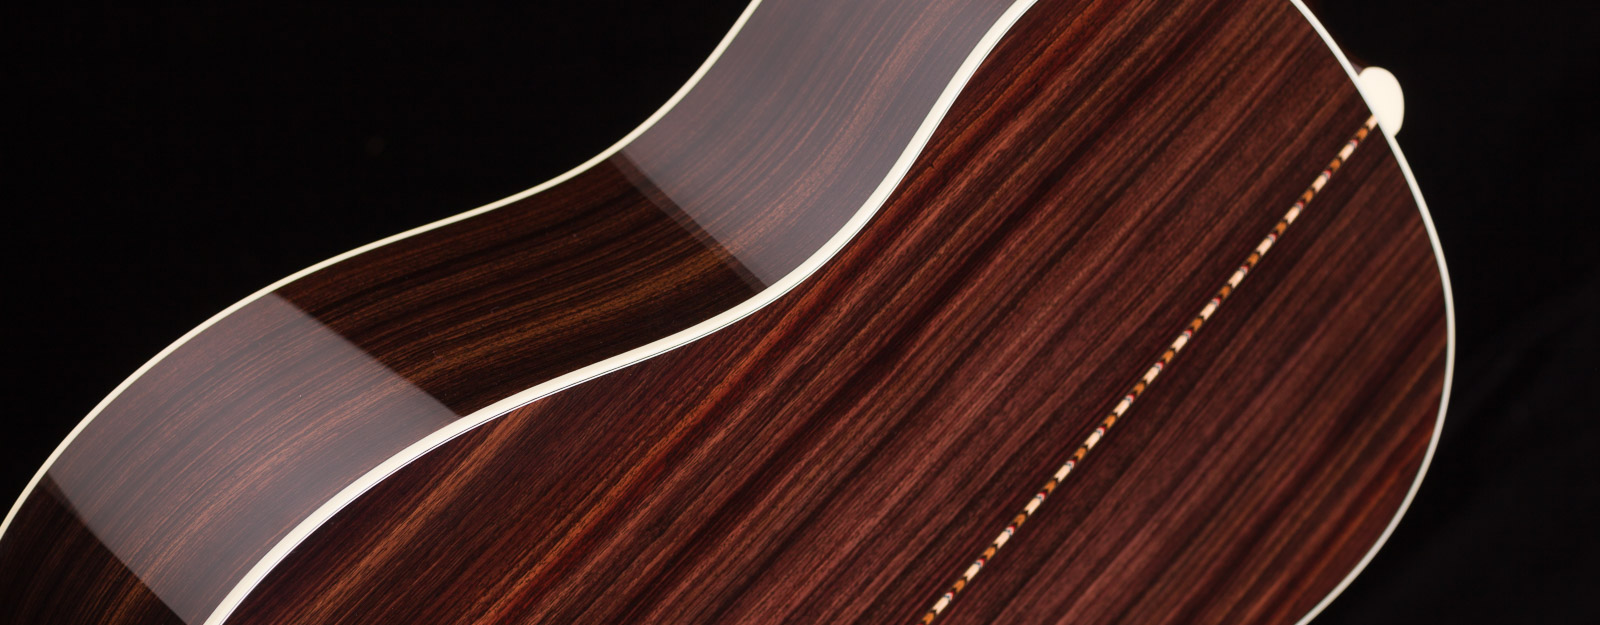 Collings Acoustic Guitars Faq Steel Guitar Wiring Diagram